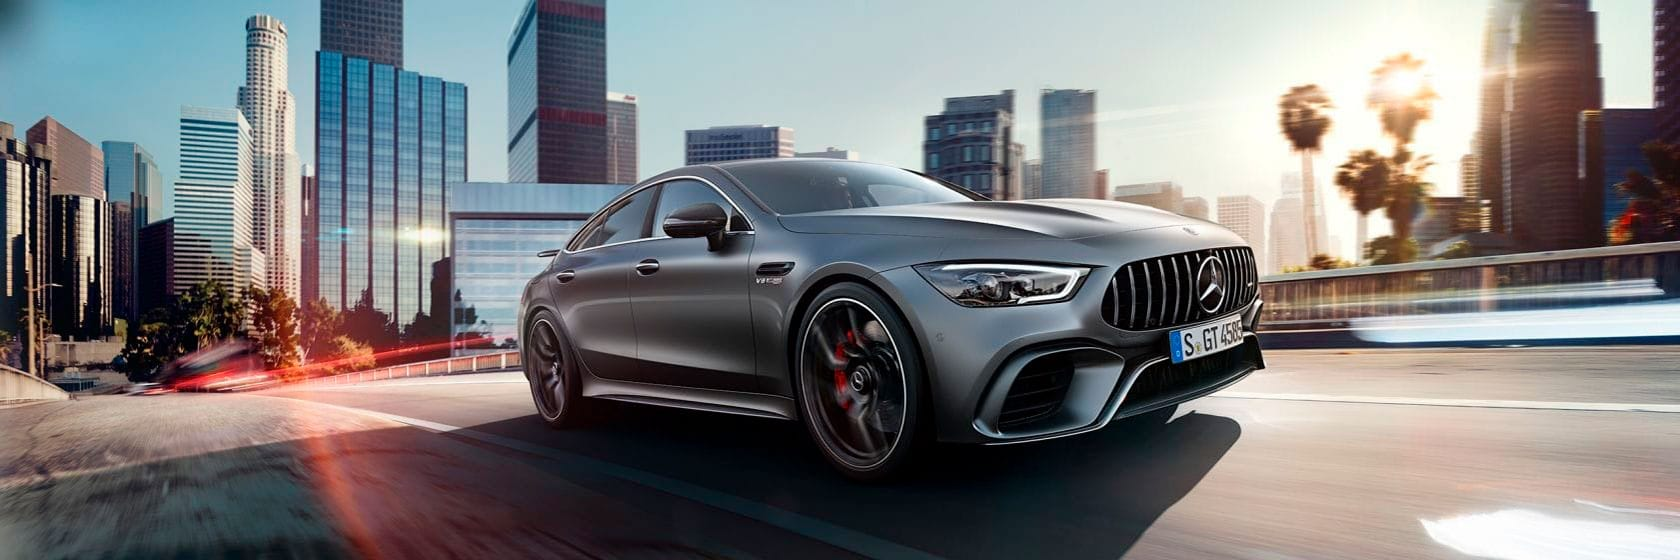 Потужність Mercedes AMG GT 4-door Coupe